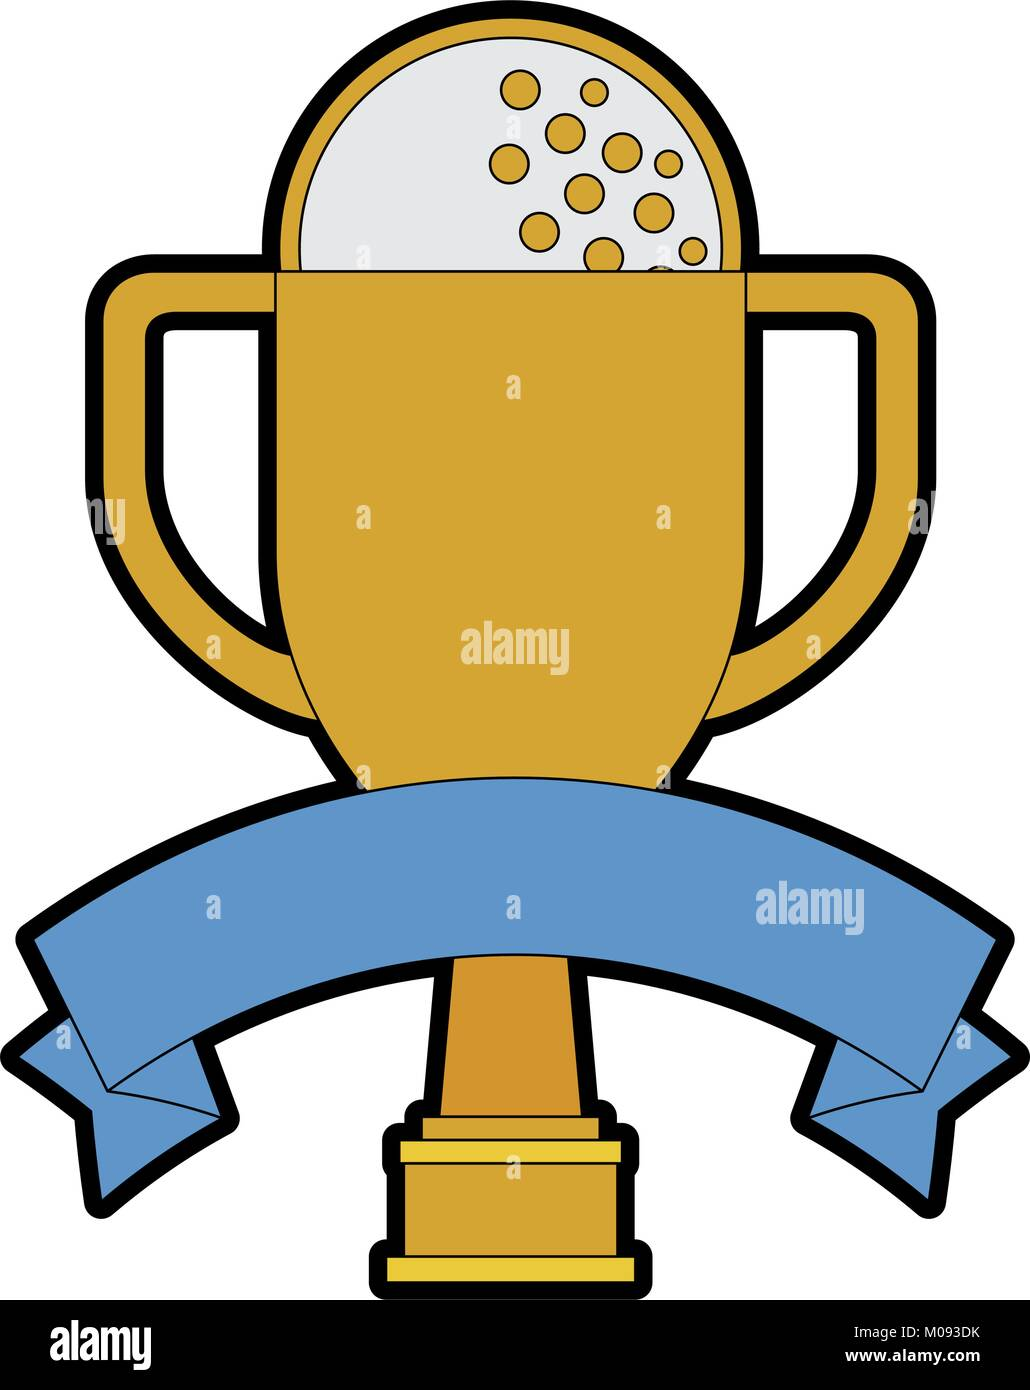 Golf Trophy Cup Championship Award Icon Vector Illustration Design Stock Vector Image Art Alamy